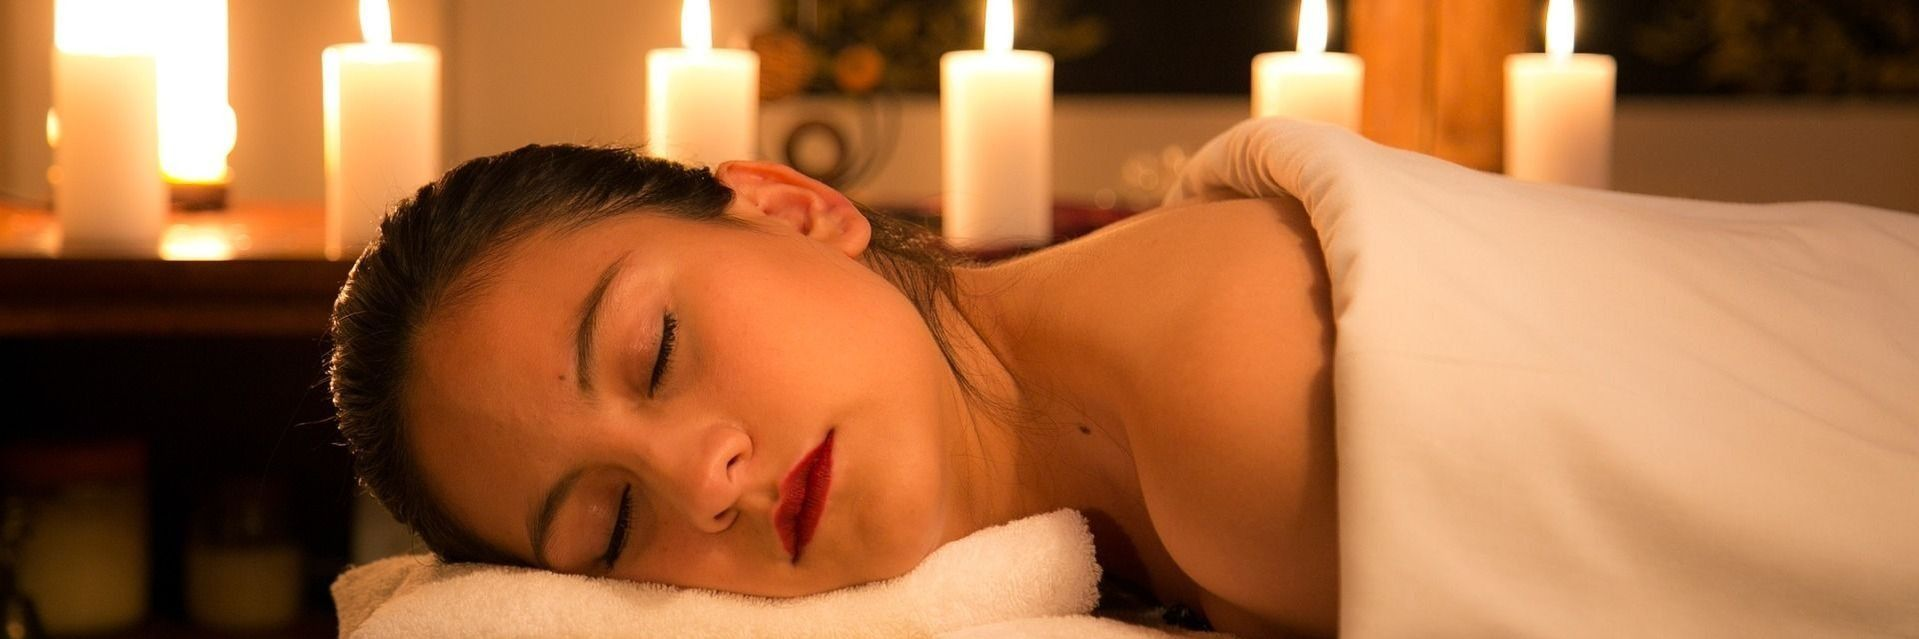 spa-massage-hotel-spa-watel-laurentides